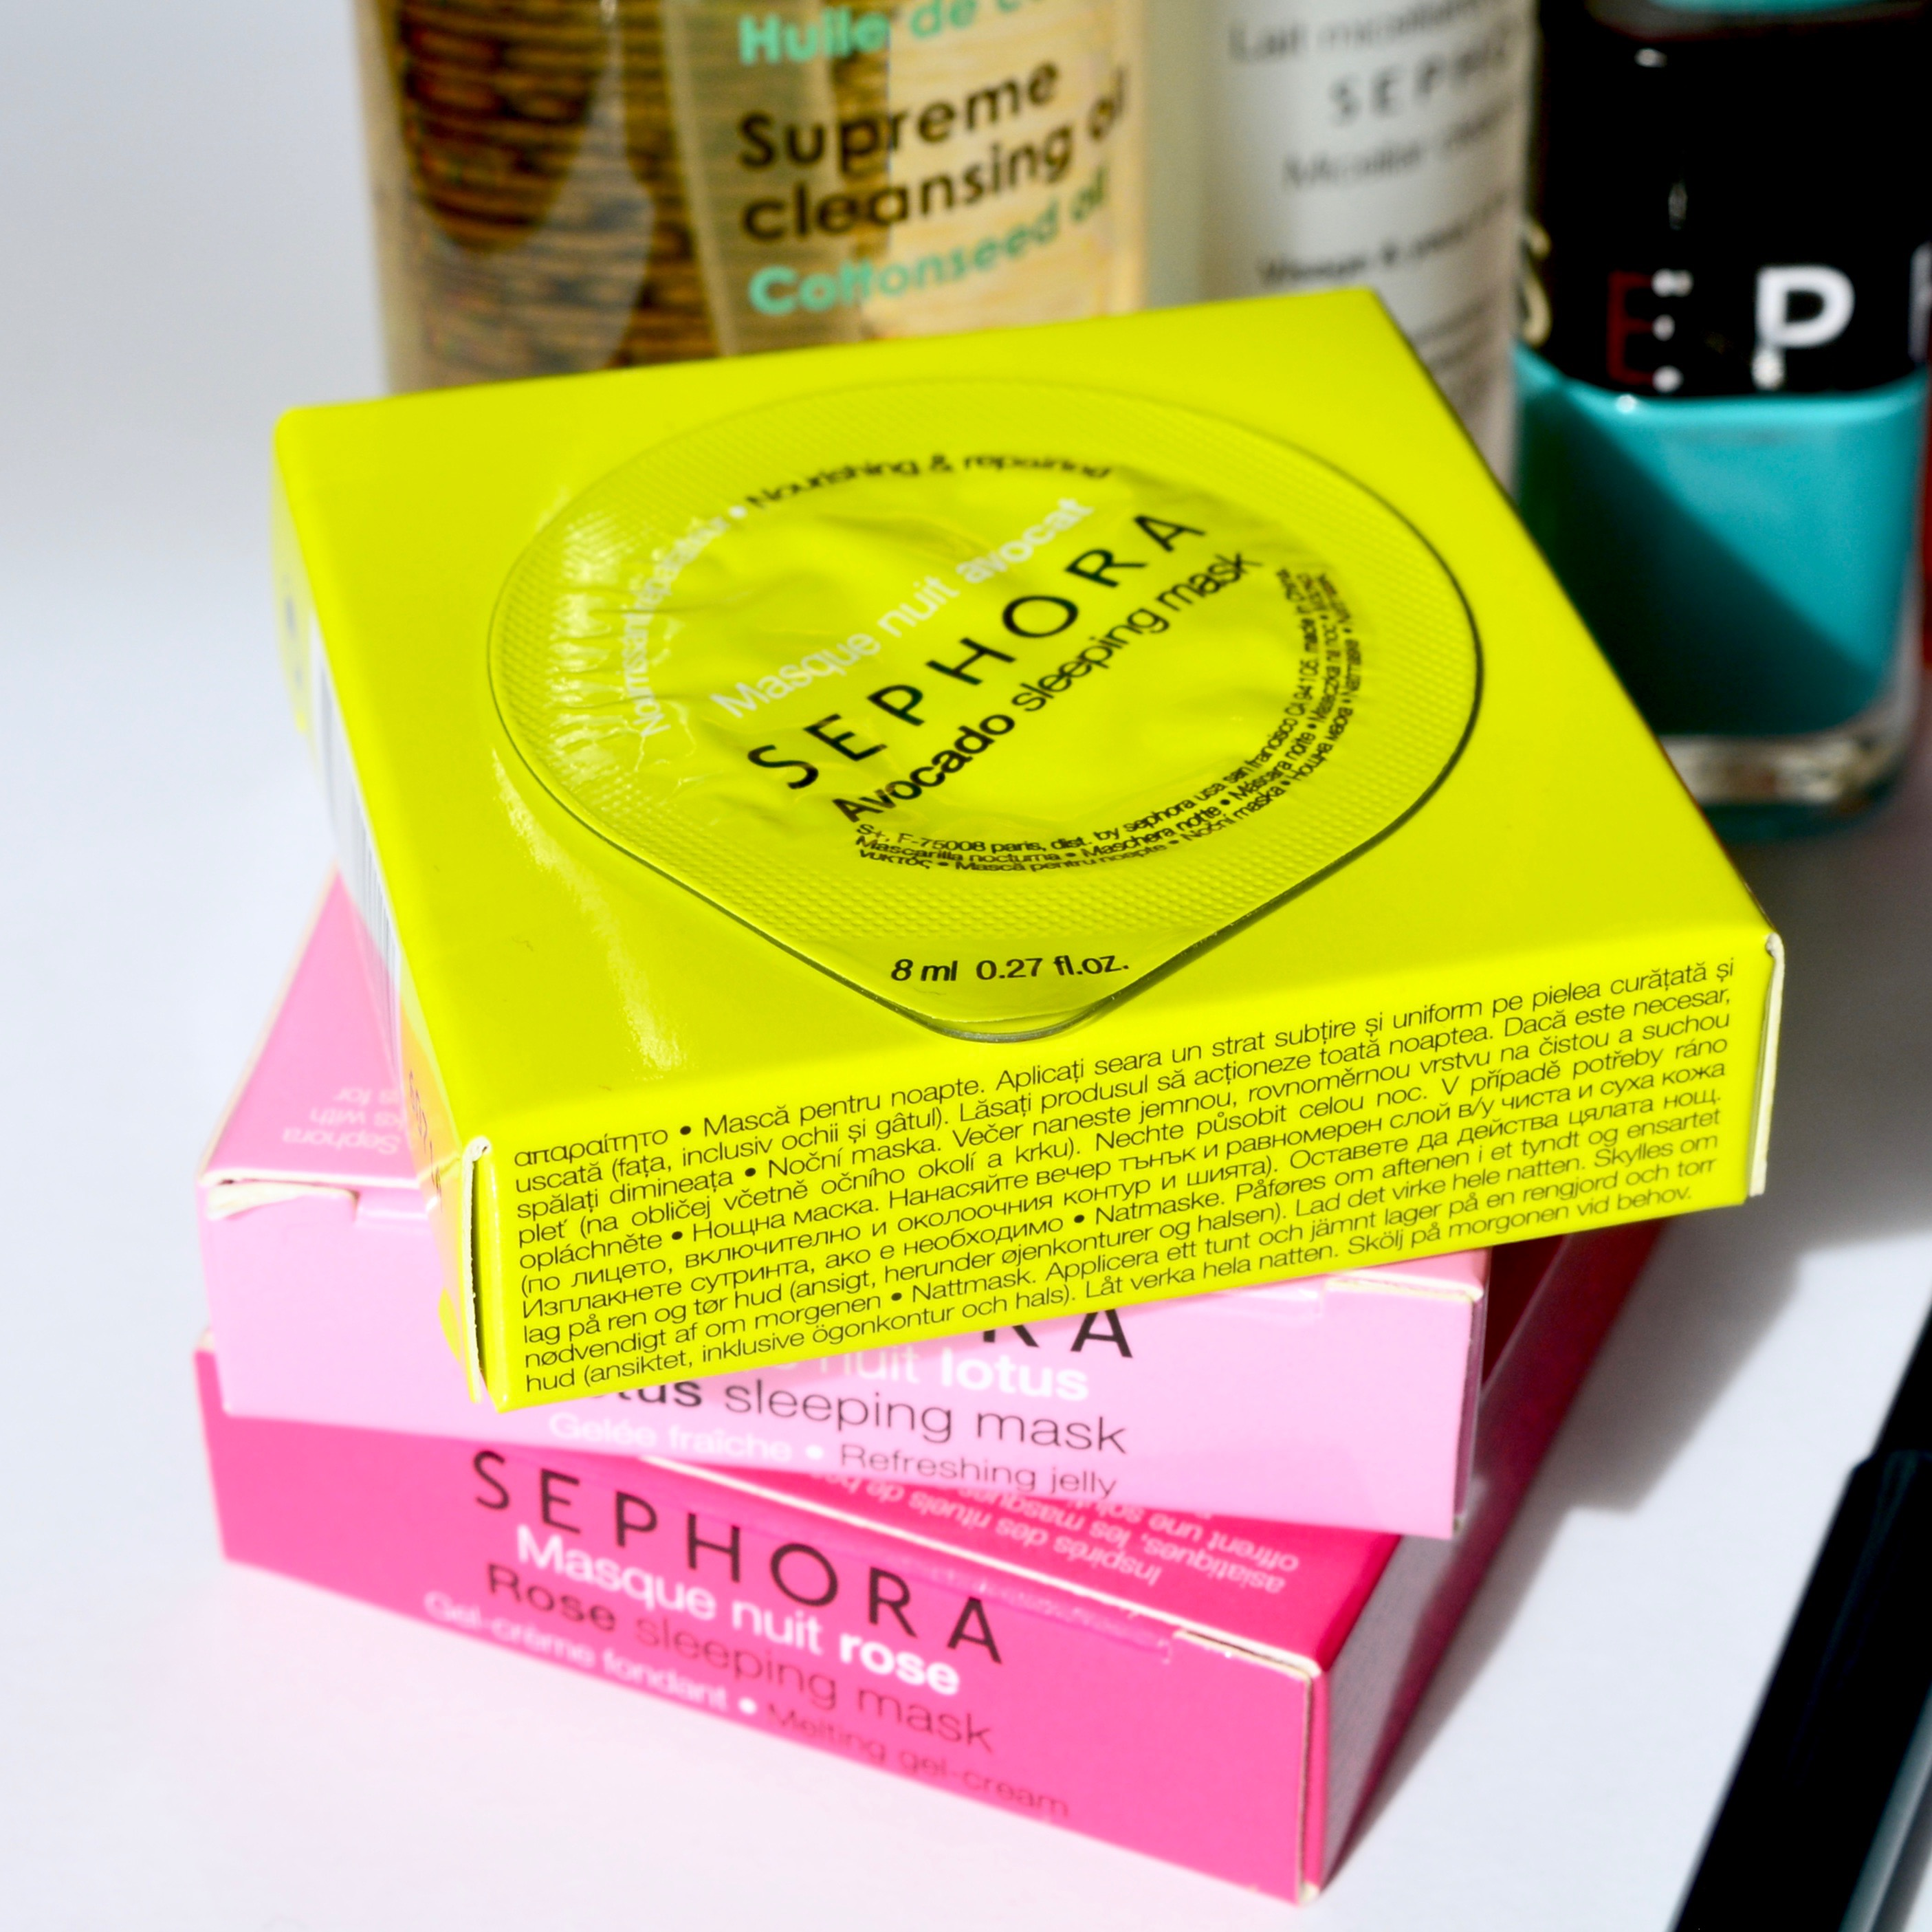 Have you tried the Sephora face masks?